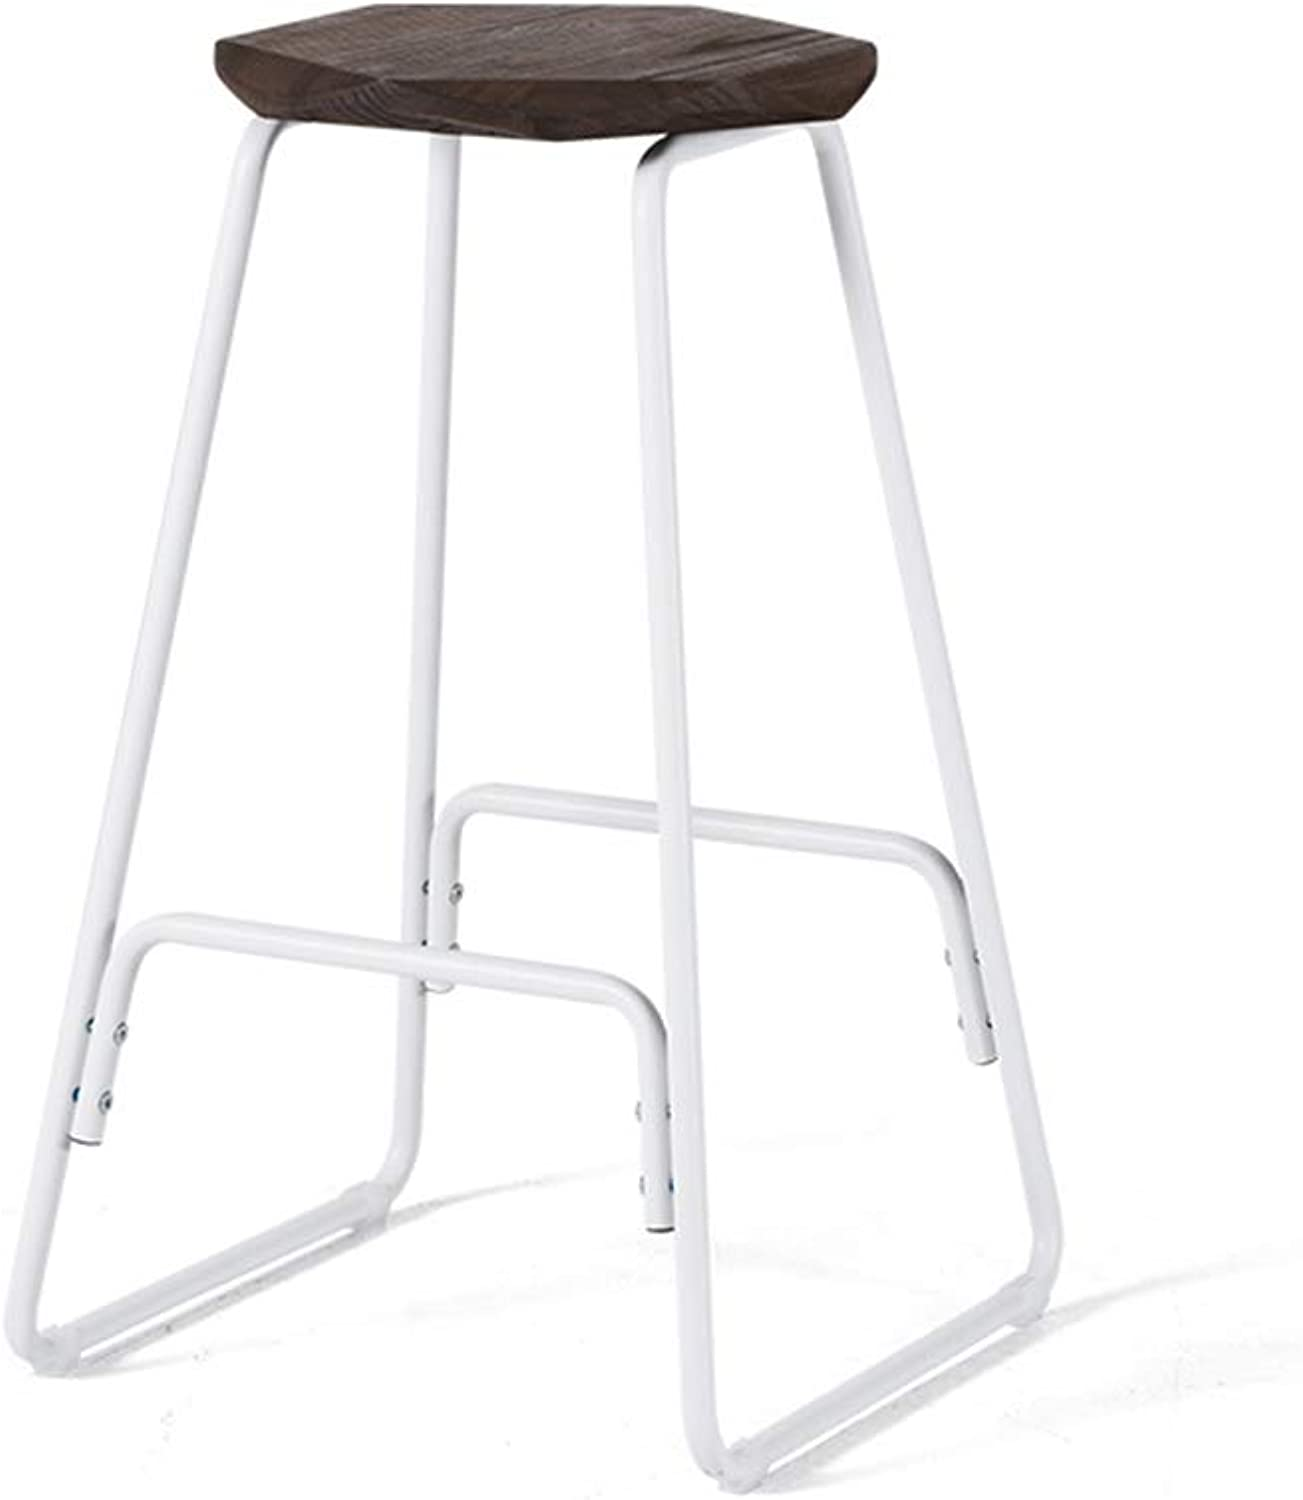 Chairs Simple Wrought Iron high Stool Home bar Chair Coffee Chair Retro bar Stool 39x39x66.5cm (color   Brown)